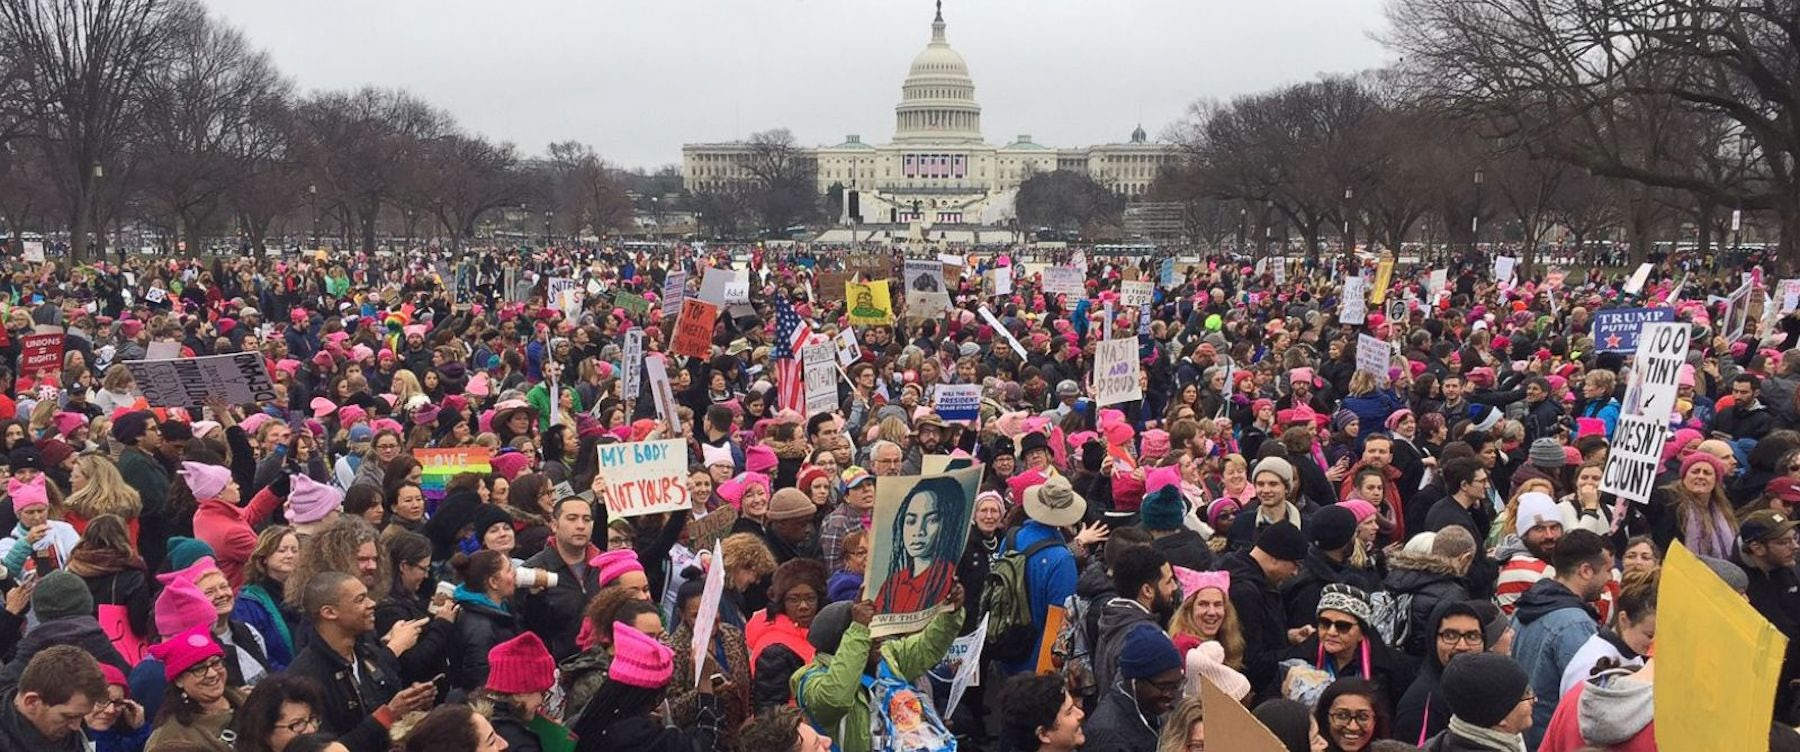 The Women's March on Washington, January 21, 2017 | Source: Flickr